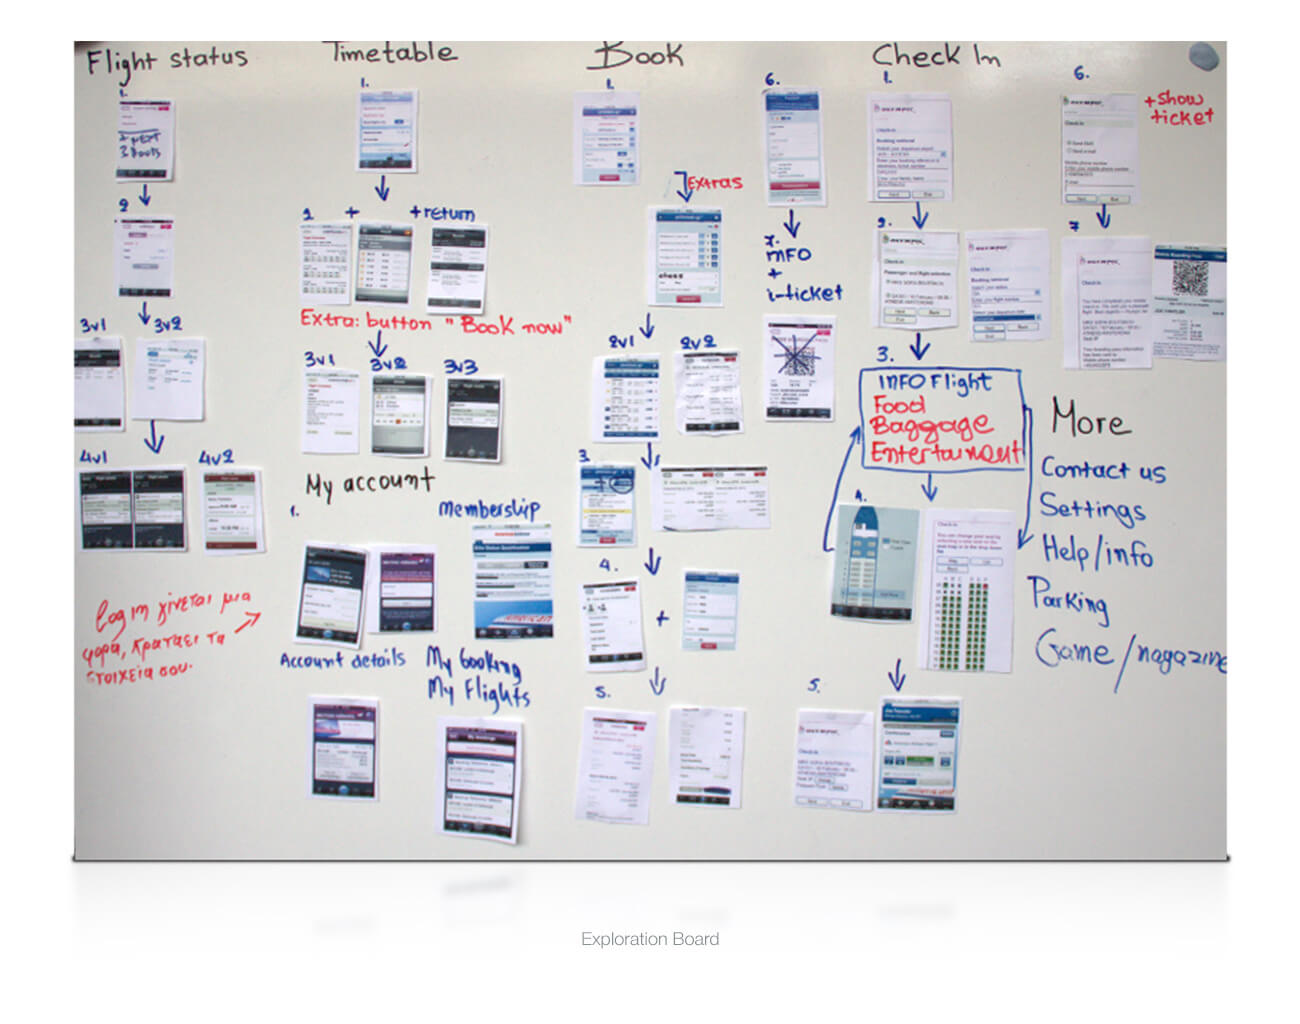 Airline Mobile App Exploration Board